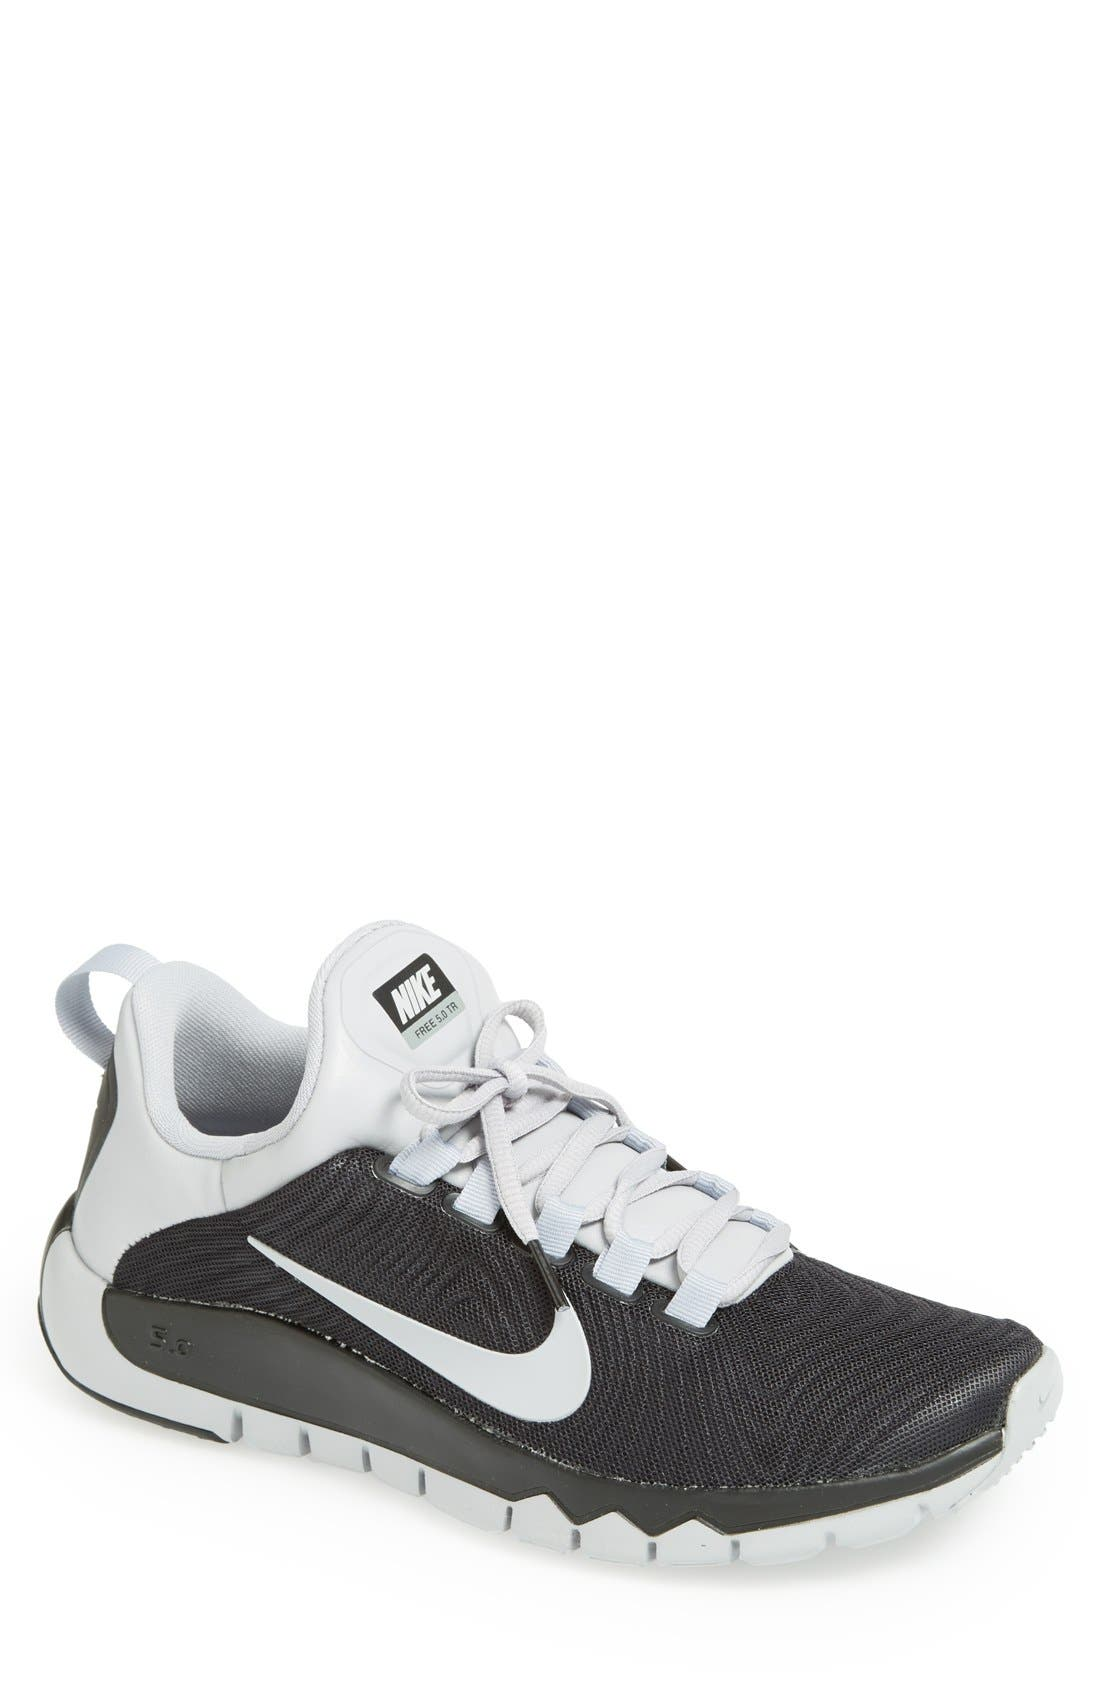 Alternate Image 1 Selected - Nike 'Free 5.0 Trainer' Training Shoe (Men)